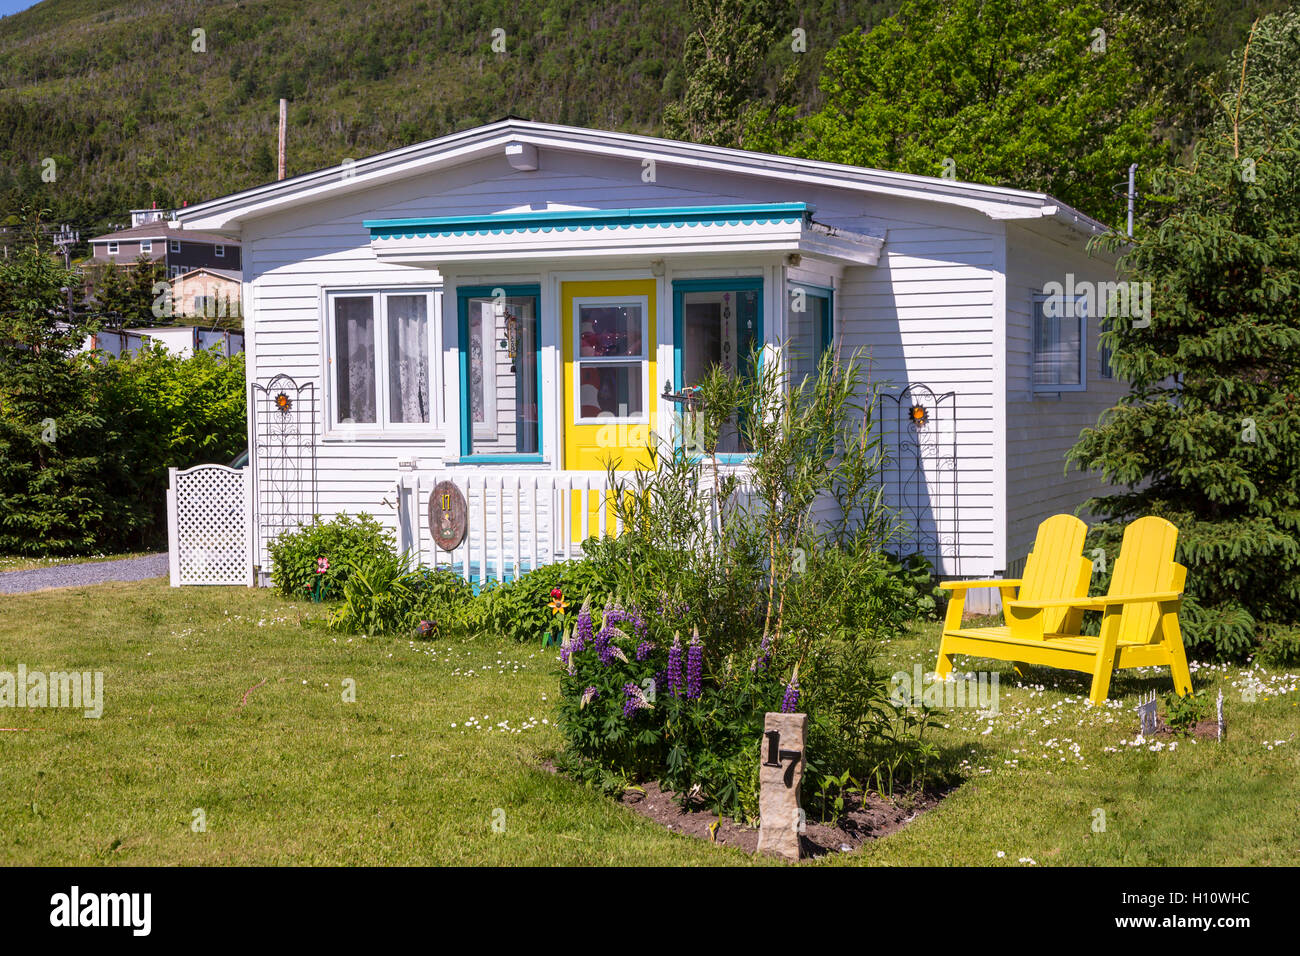 An island home at Woody Point, Newfoundland and Labrador, Canada. - Stock Image